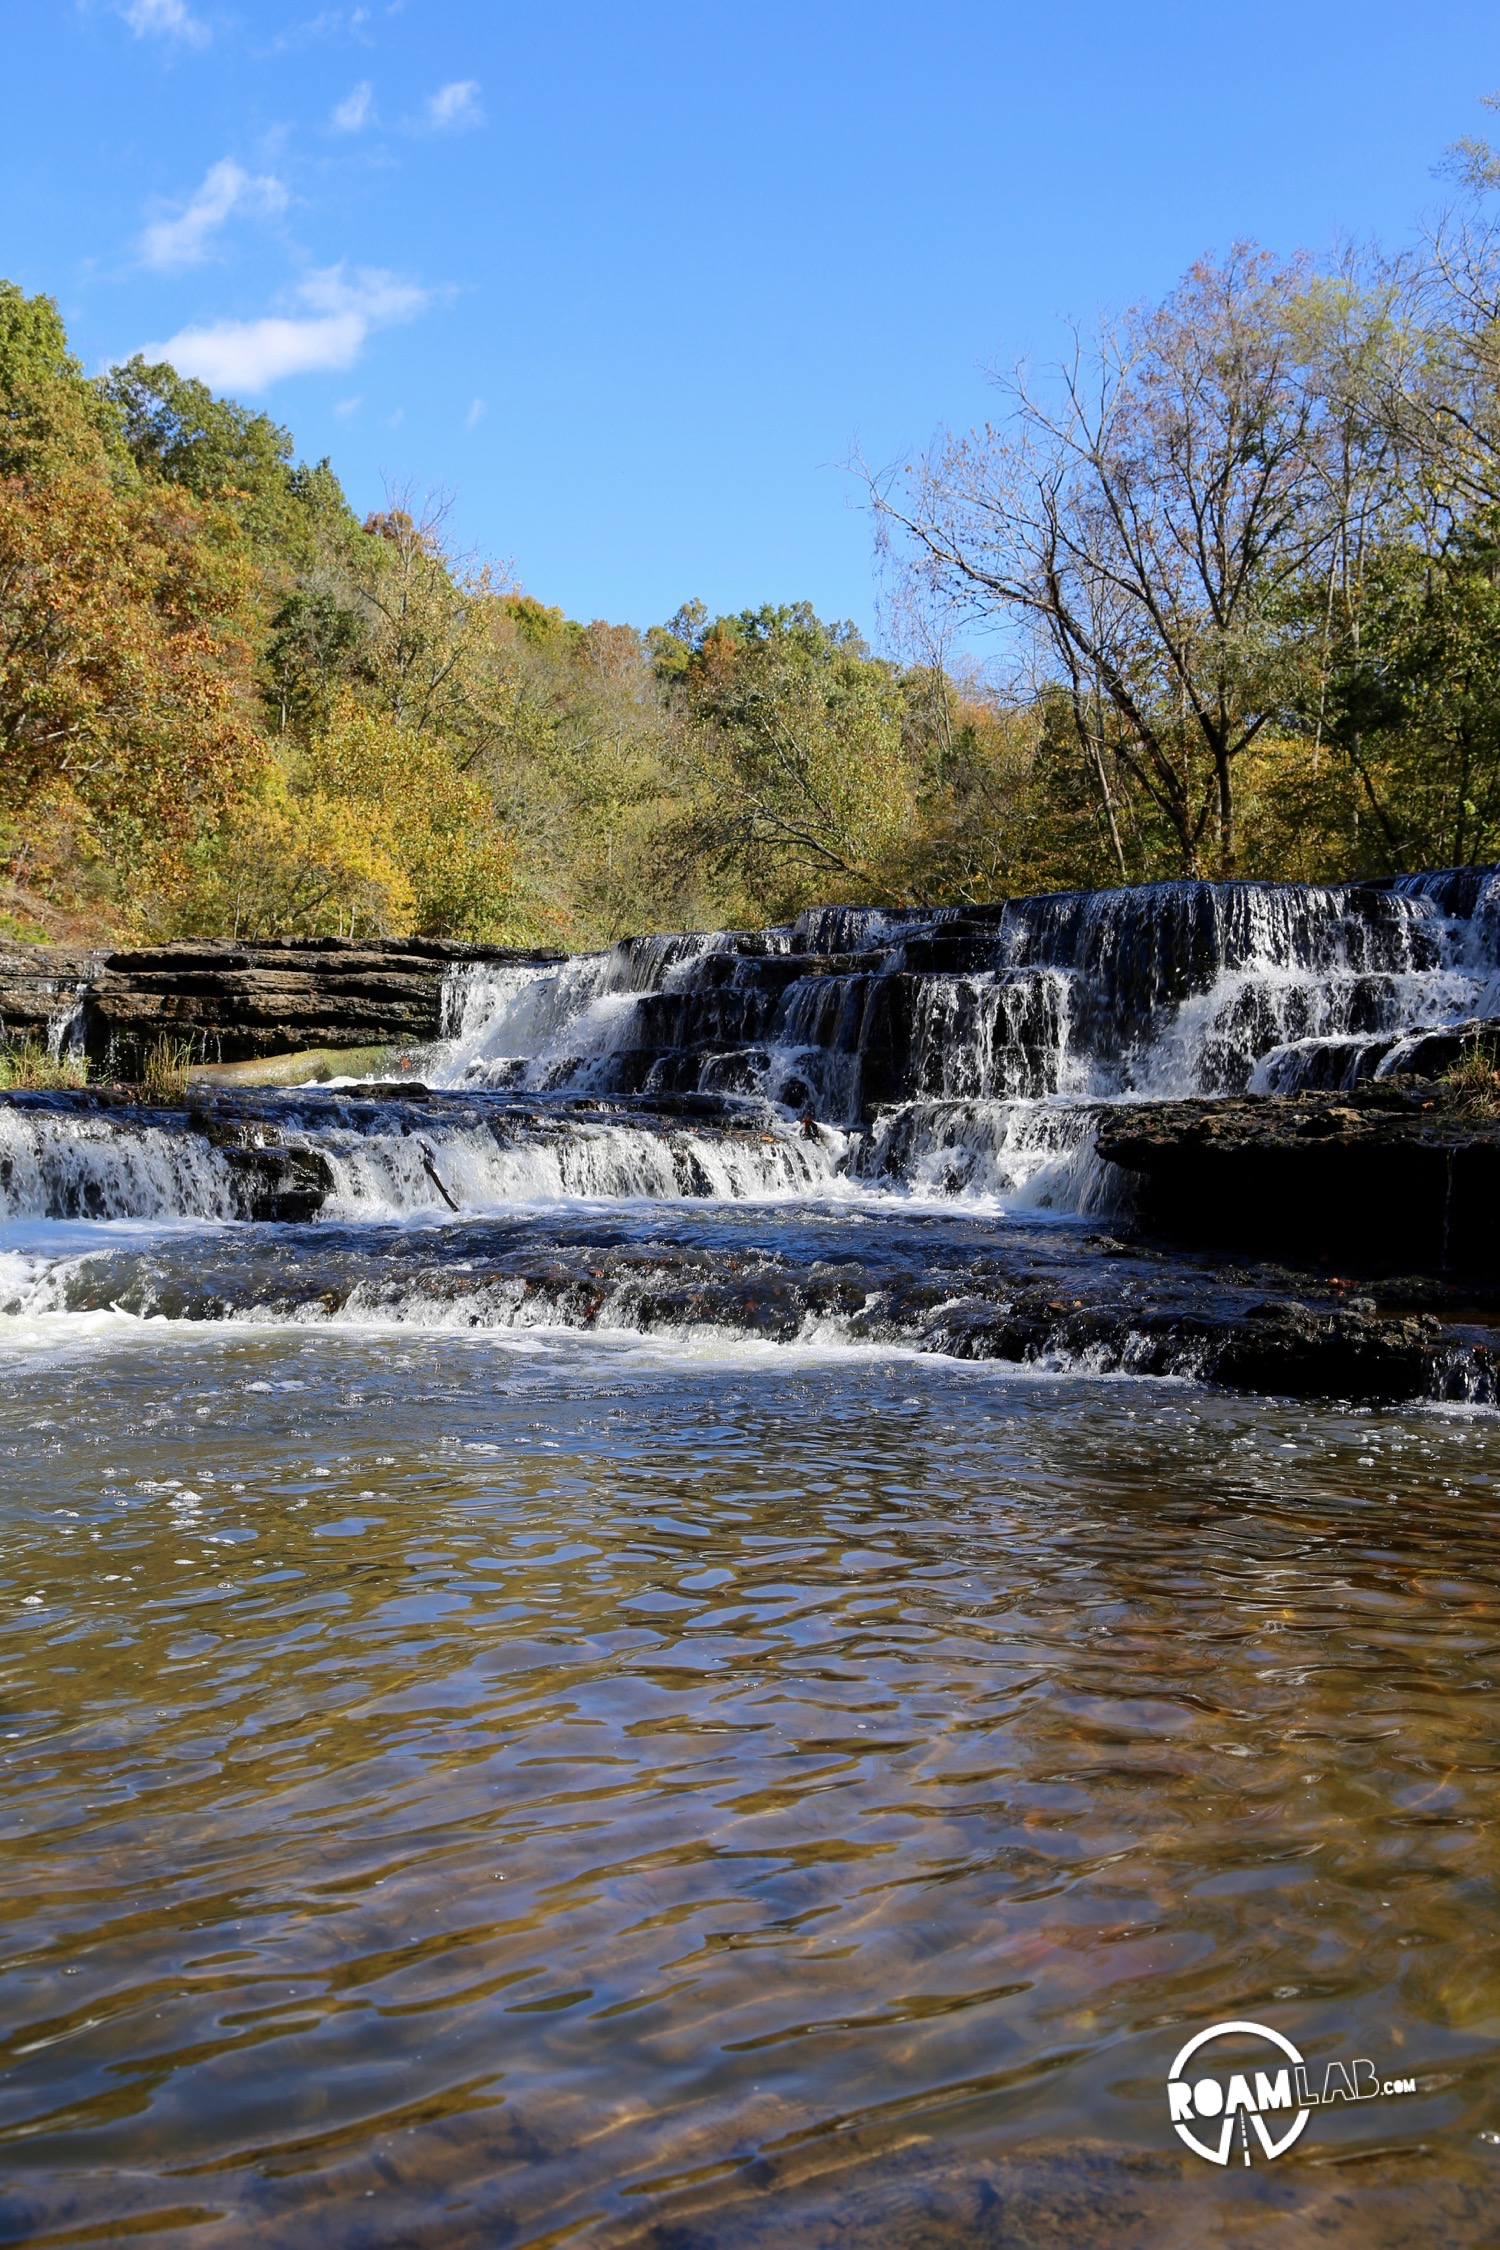 Burgess Falls State Park is everything you would expect of a park named after it's series of four, magnificent waterfalls. One trail will take you by each, successively more grand water feature, culminating at the base of the Burgess Falls.